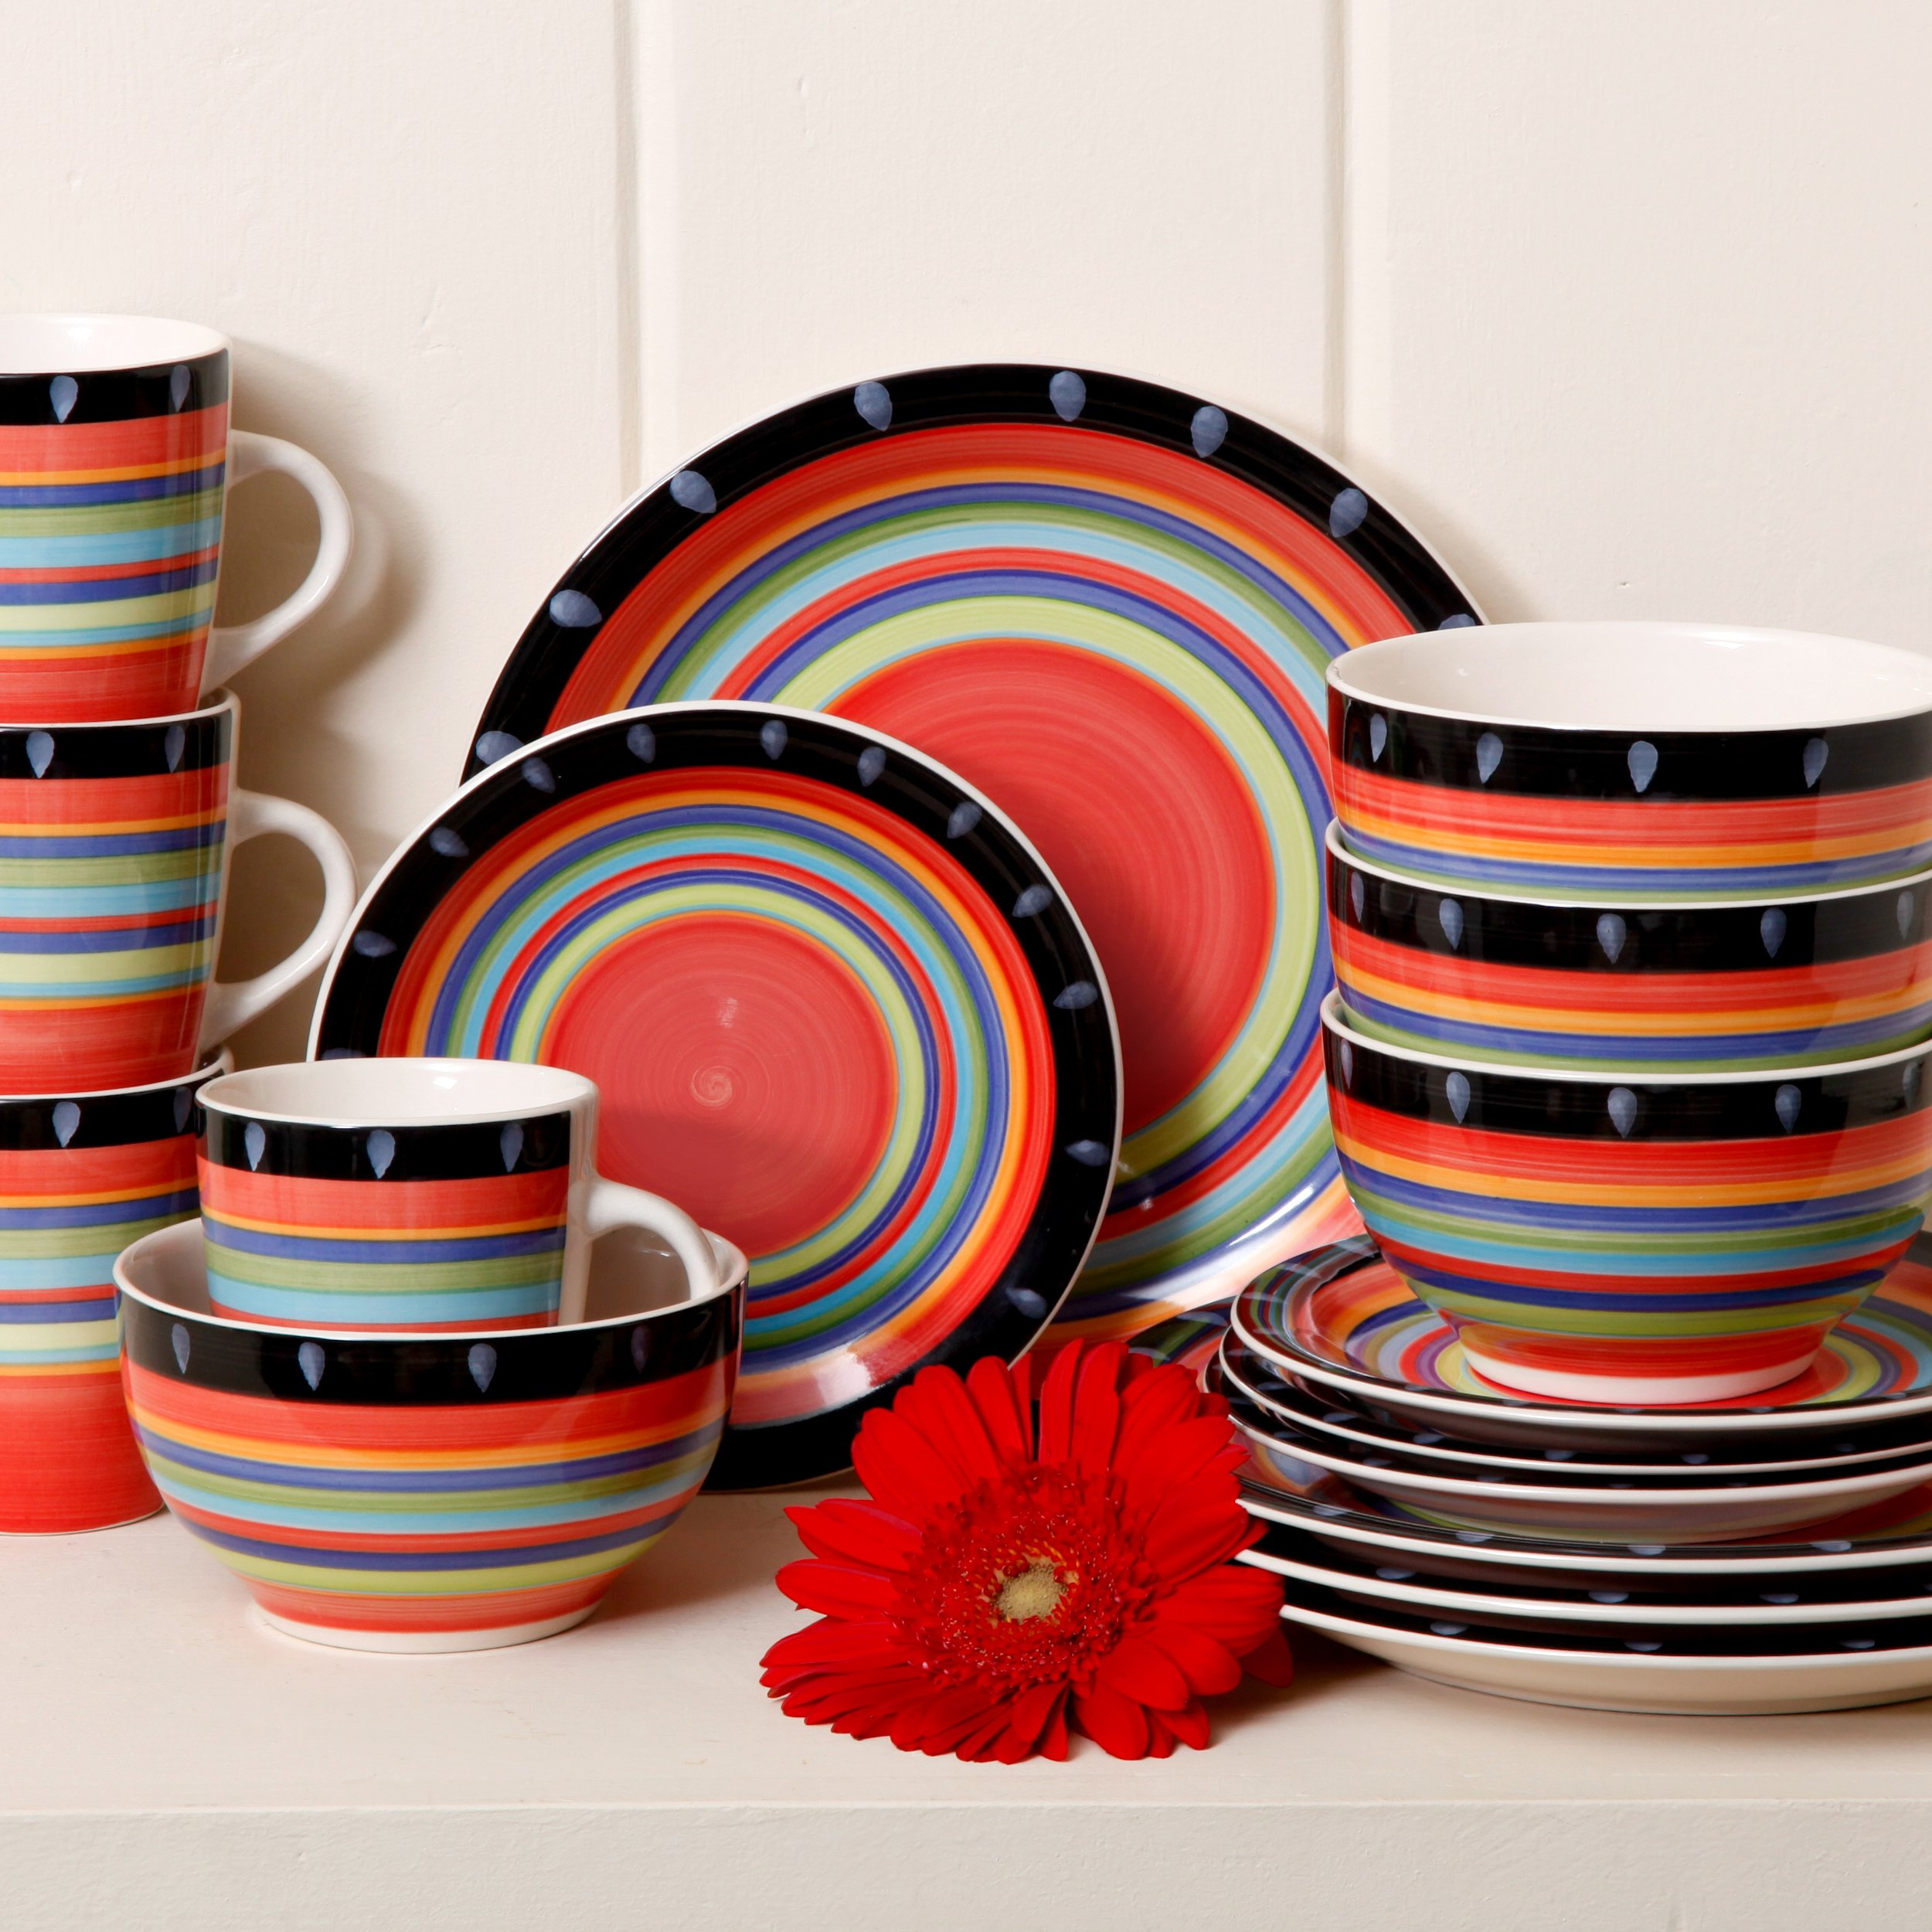 DETAILS. Dinnerware Set Red Dishes Dinner Stoneware ... : red stoneware dinnerware sets - pezcame.com